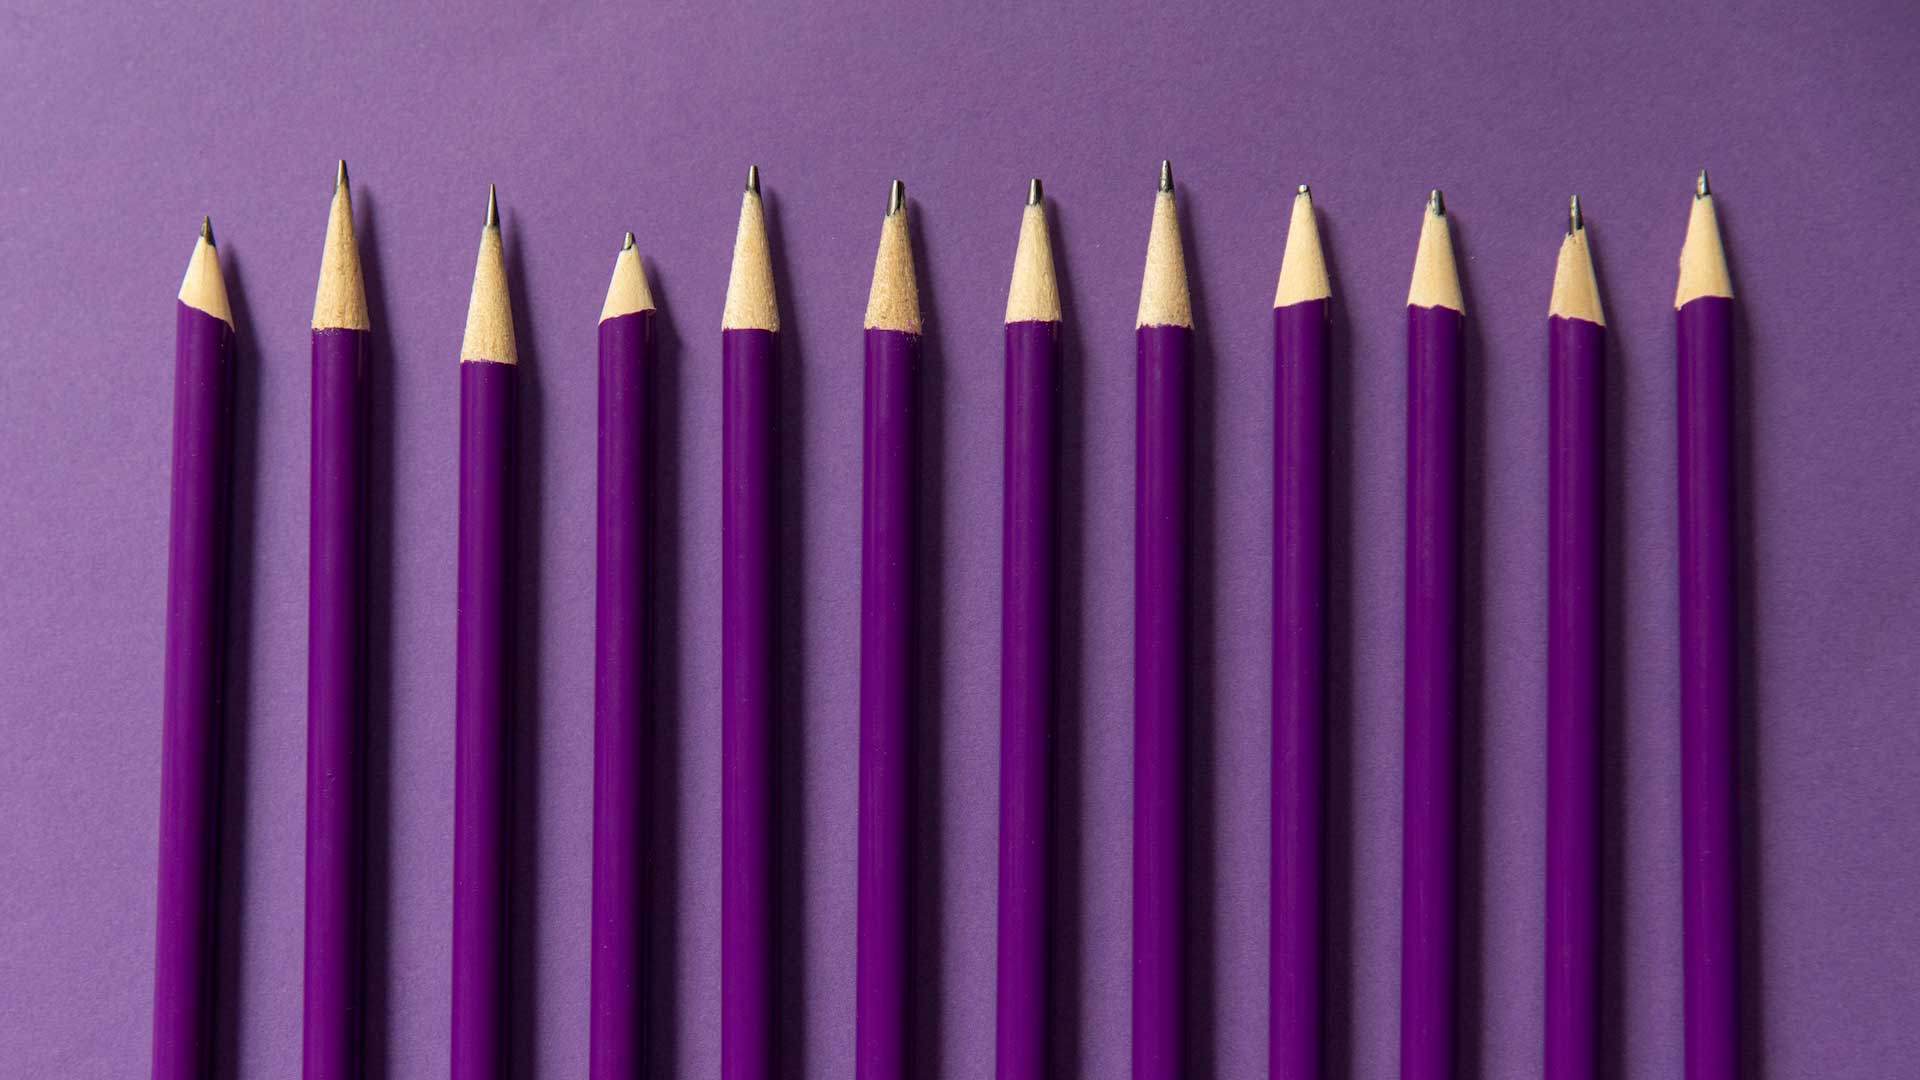 Purple pencils lined up evenly over a purple backdrop.